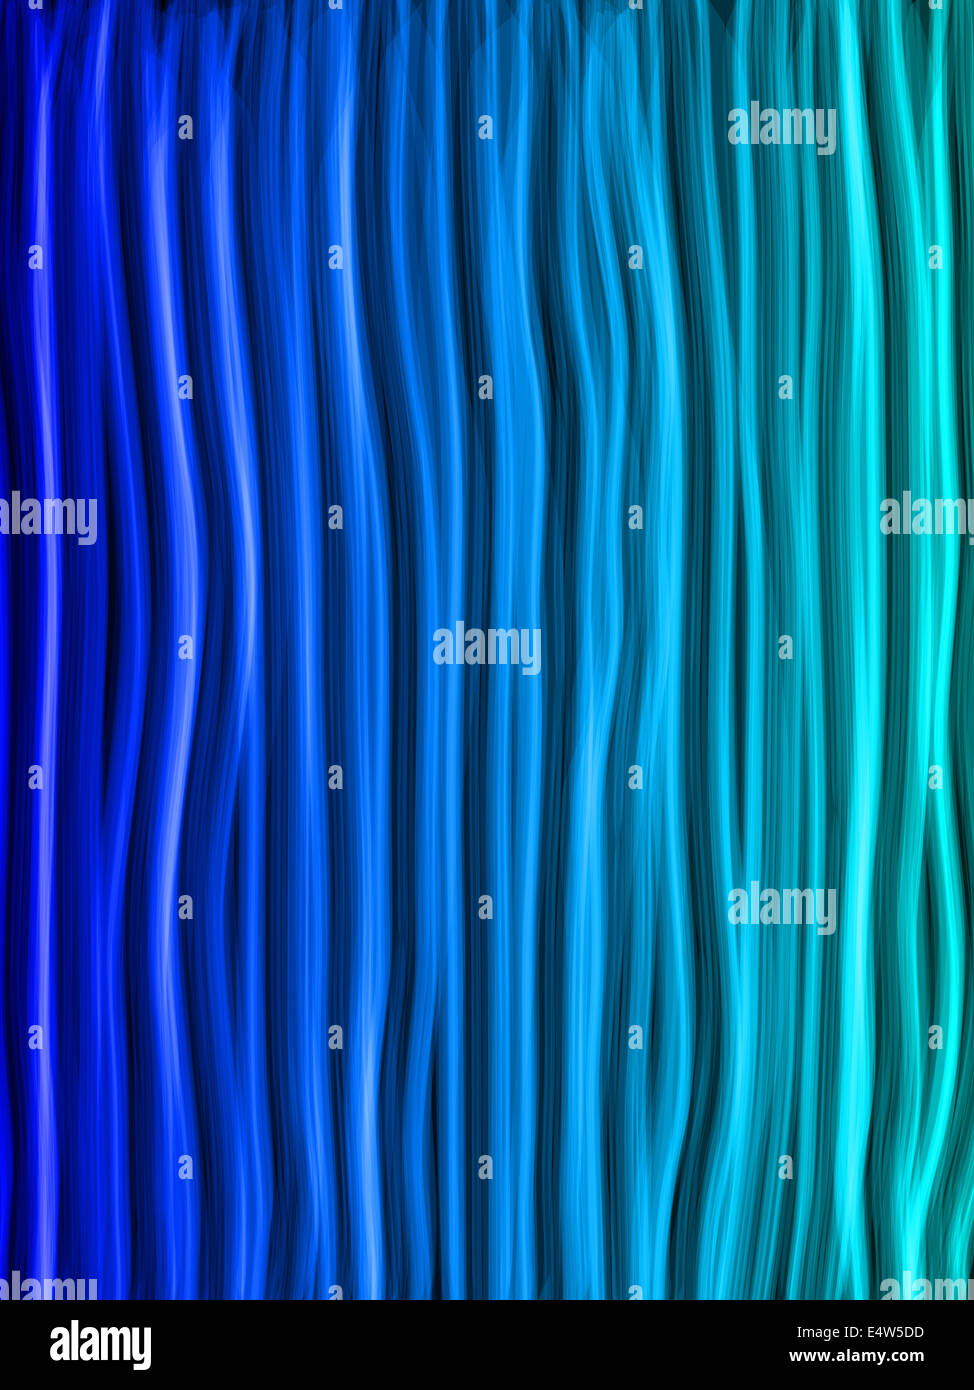 Abstract Blue Lines Background - Stock Image